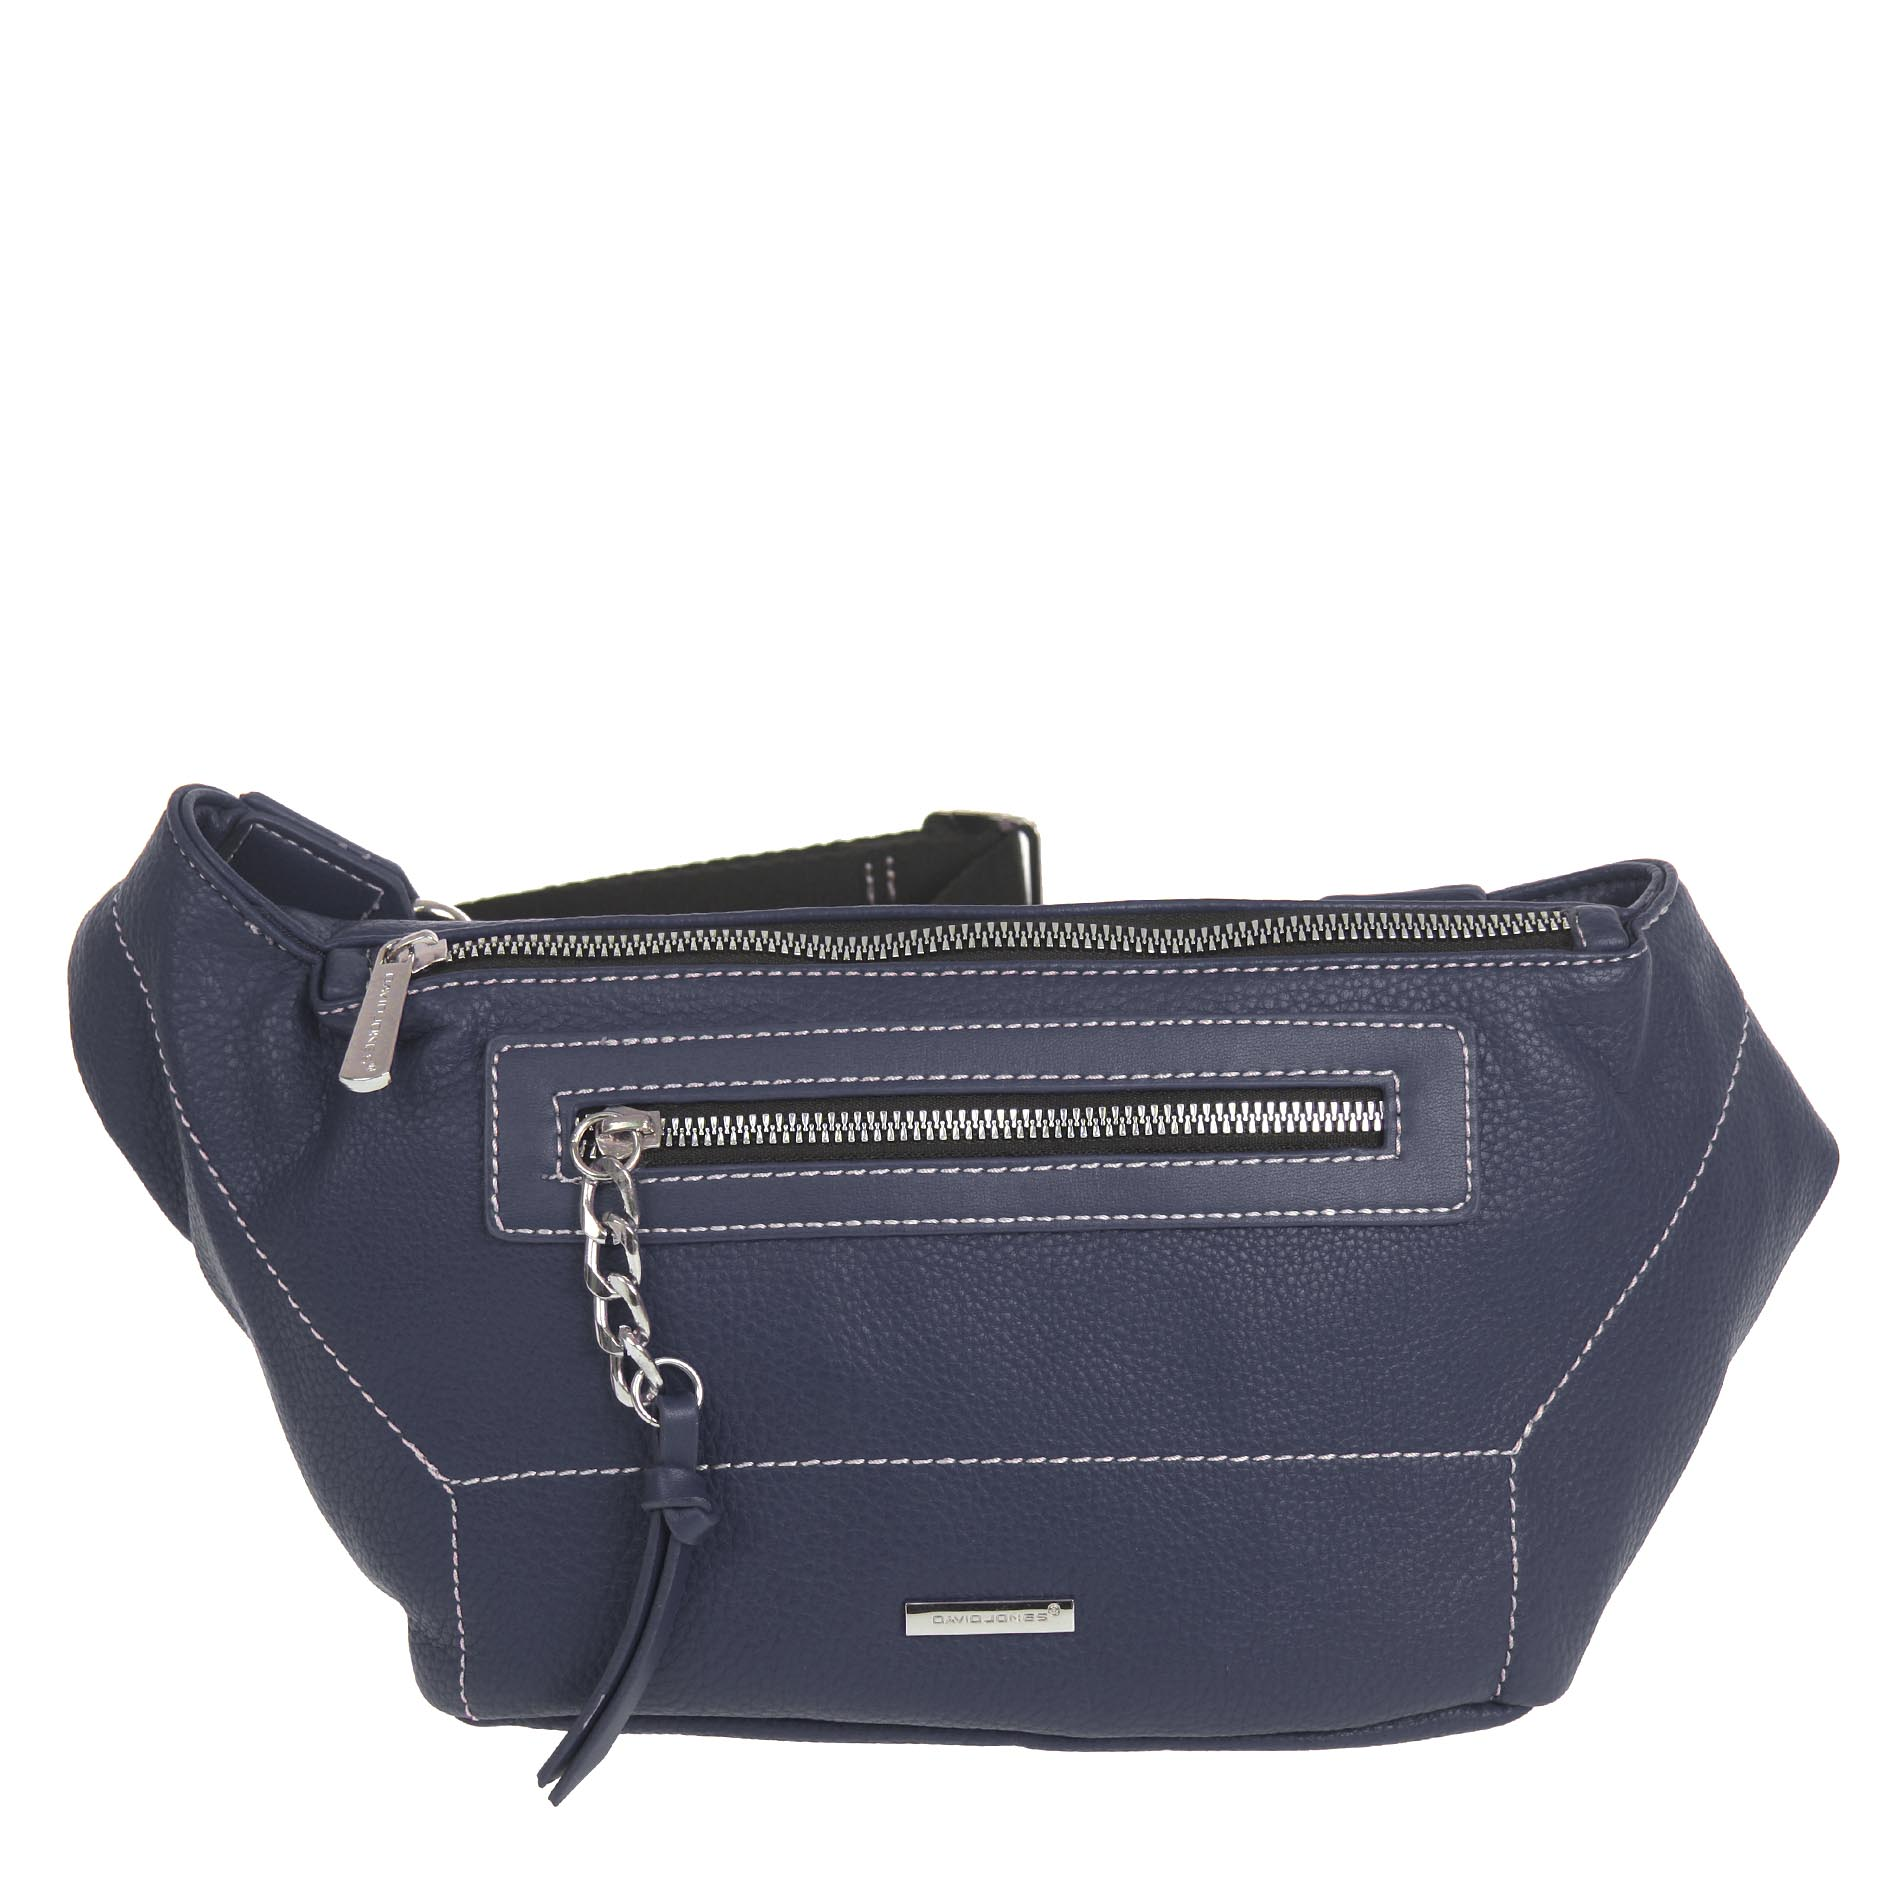 Bedrová kapsička David Jones CM-5407-blue